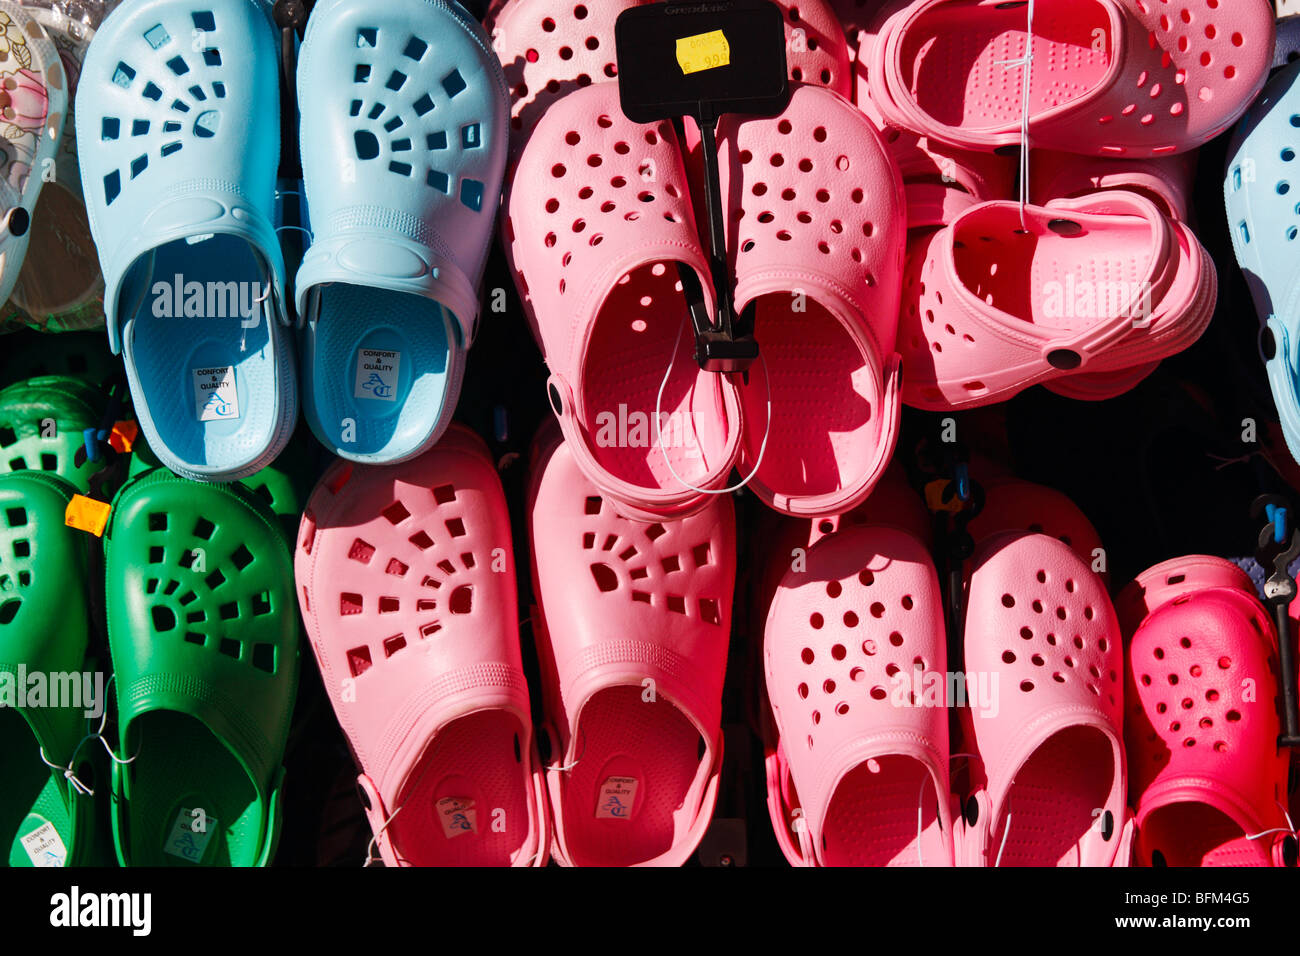 Croc sandals on market stall in Spain - Stock Image